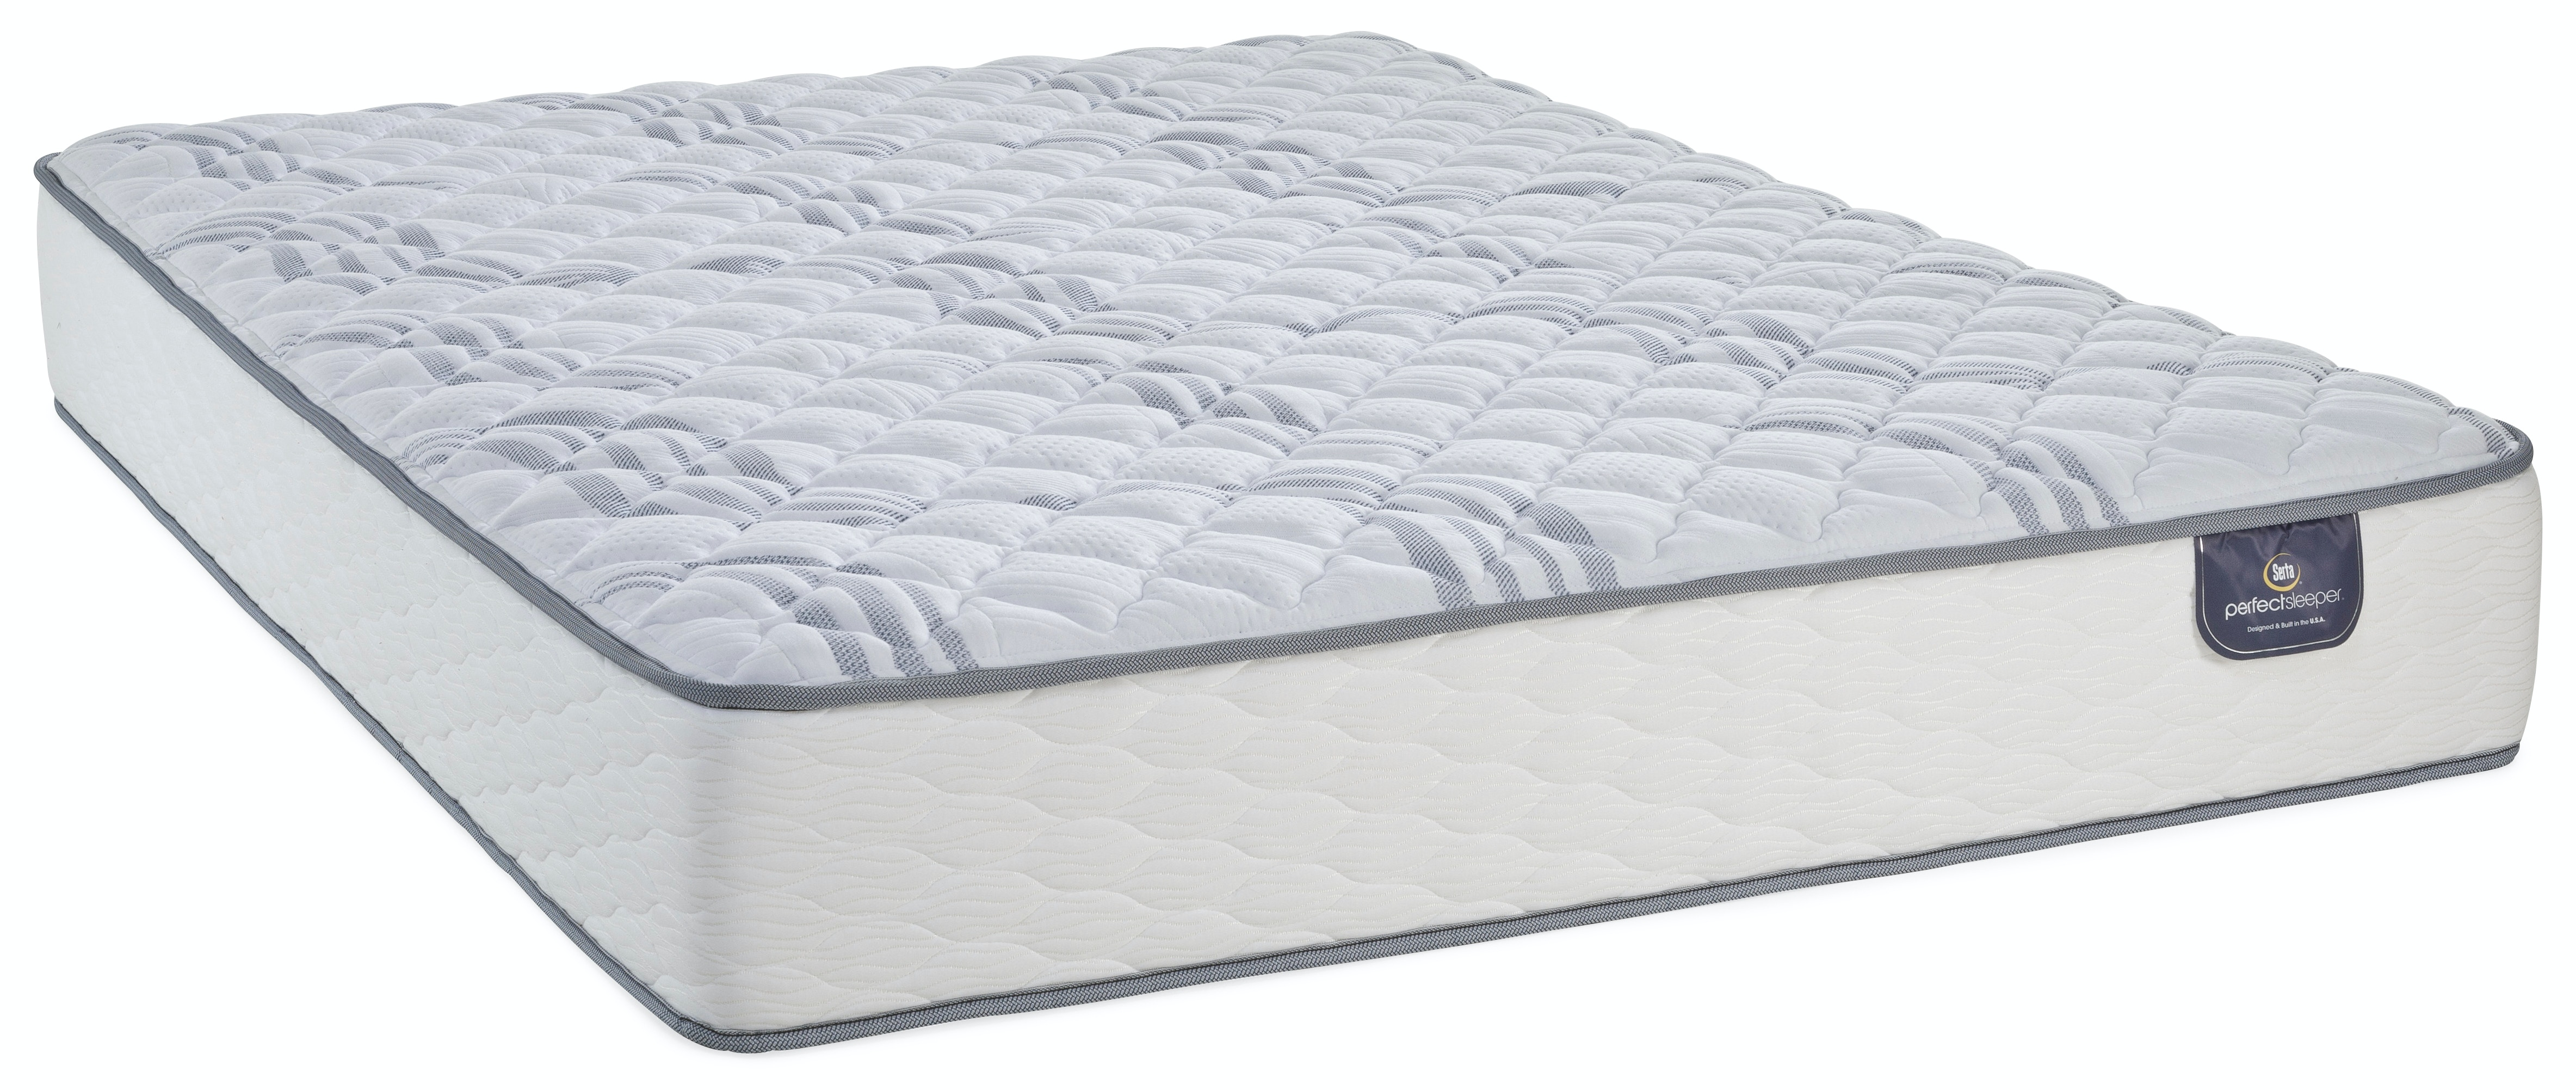 Mattresses Serta Perfect Sleeper Select Sheppard Firm Mattress Queen